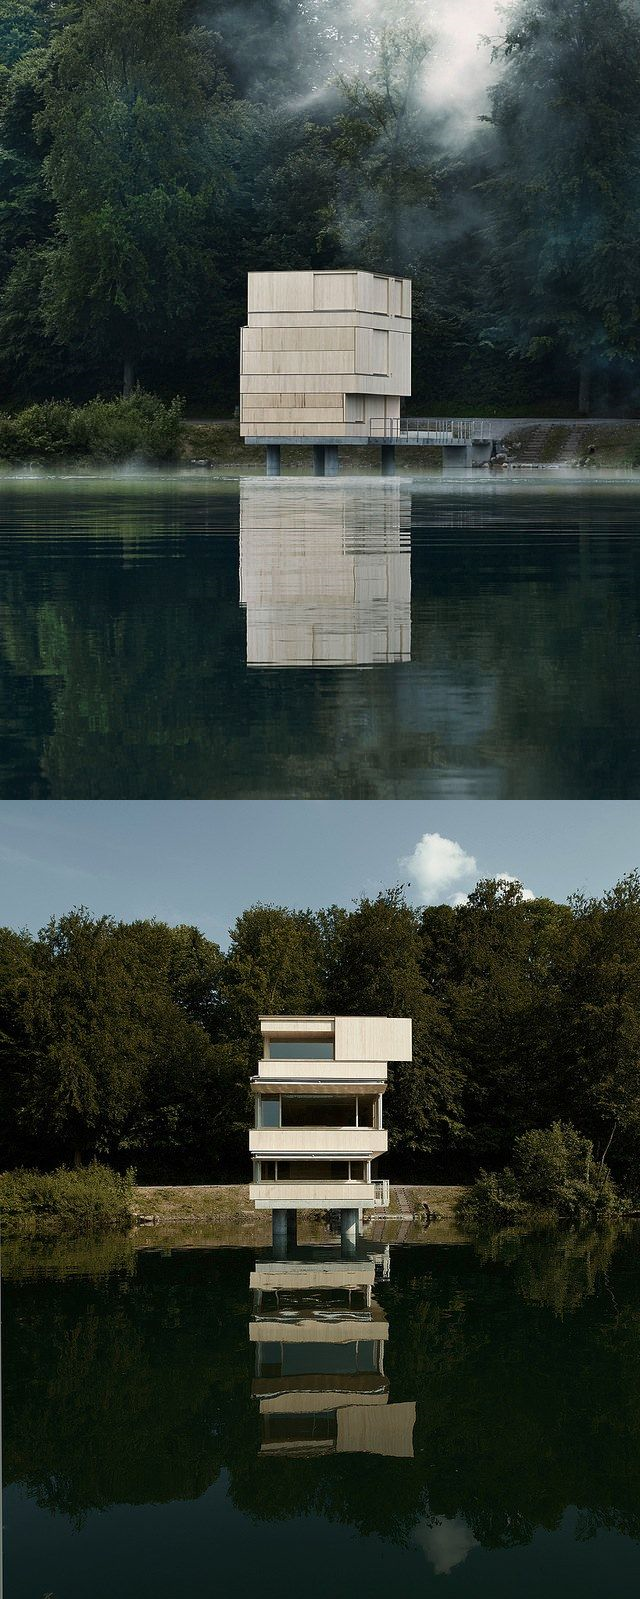 Zombie proof house | Cribs | Pinterest | Zombie proof house, House on underground concrete house design, minecraft hut design, home design, best underground bunker design, modern bunker design, zombie protection house, zombie cakes design, zombie apocalypse house, guard house design, minimal house design, earthquake proof house design, coach house design, oban & 2 by agushi workroom design, earthquake resistant building design, fortified house design, hurricane proof house design, defensive house design, native house design,